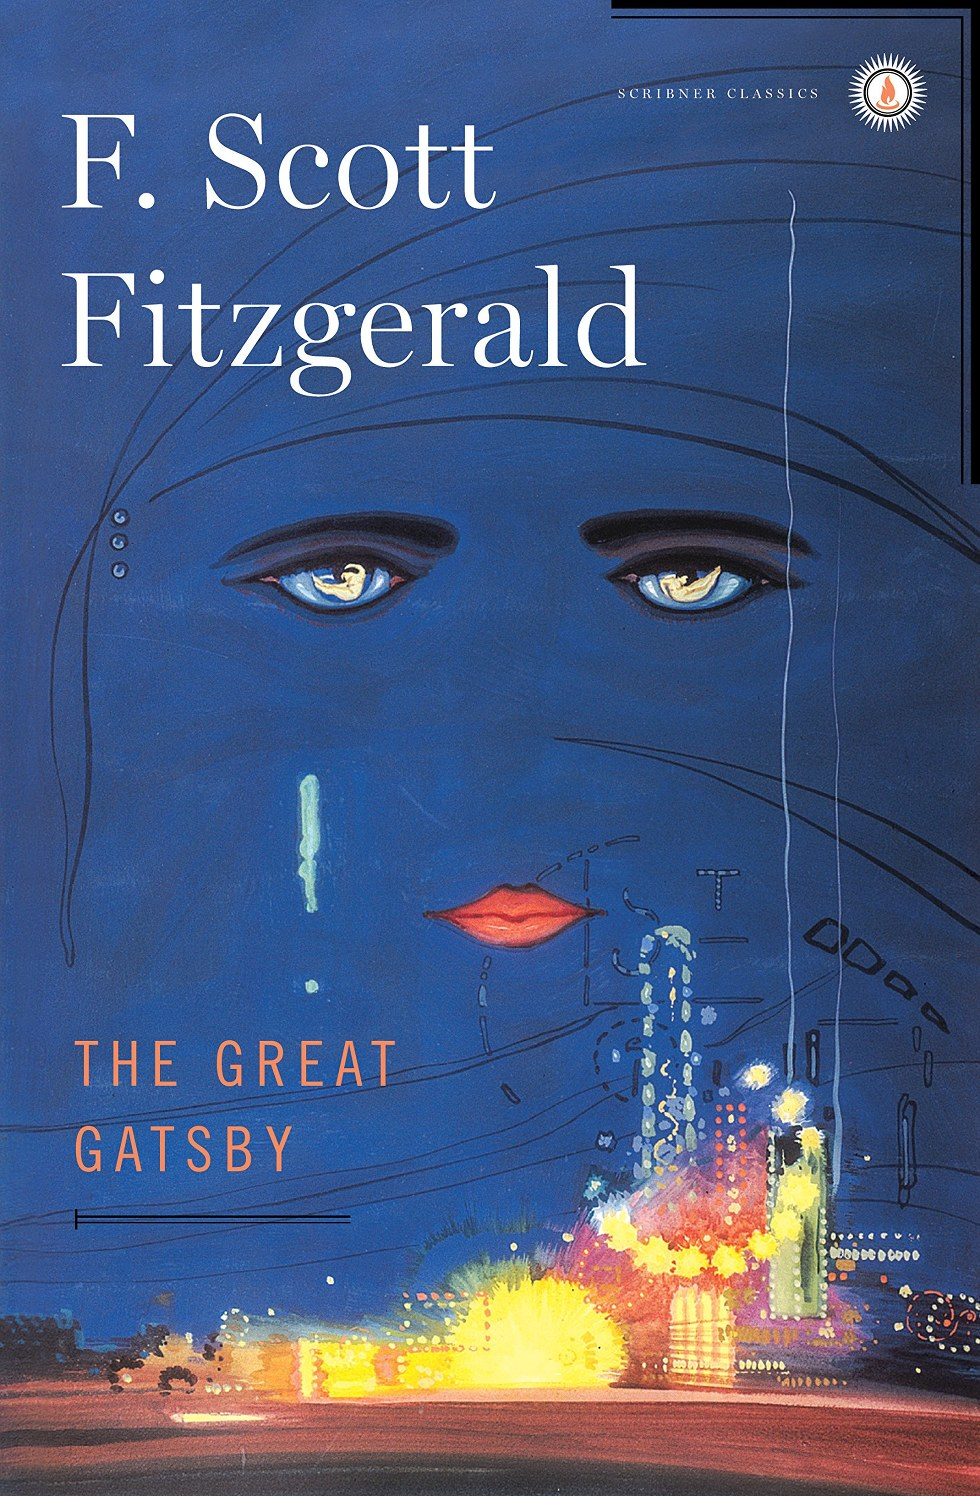 an analysis of ostracism in the great gatsby a novel by f scott fitzgerald Scott fitzgerald's criticism of america (fitzgerald, nd) this not only shows daisy's cyni- their culture, whether or not it is their intention to do so, be- cism for the world they live in, but also her idea of women in cause, like the rest of us, authors are influenced by the ideologi- the world.